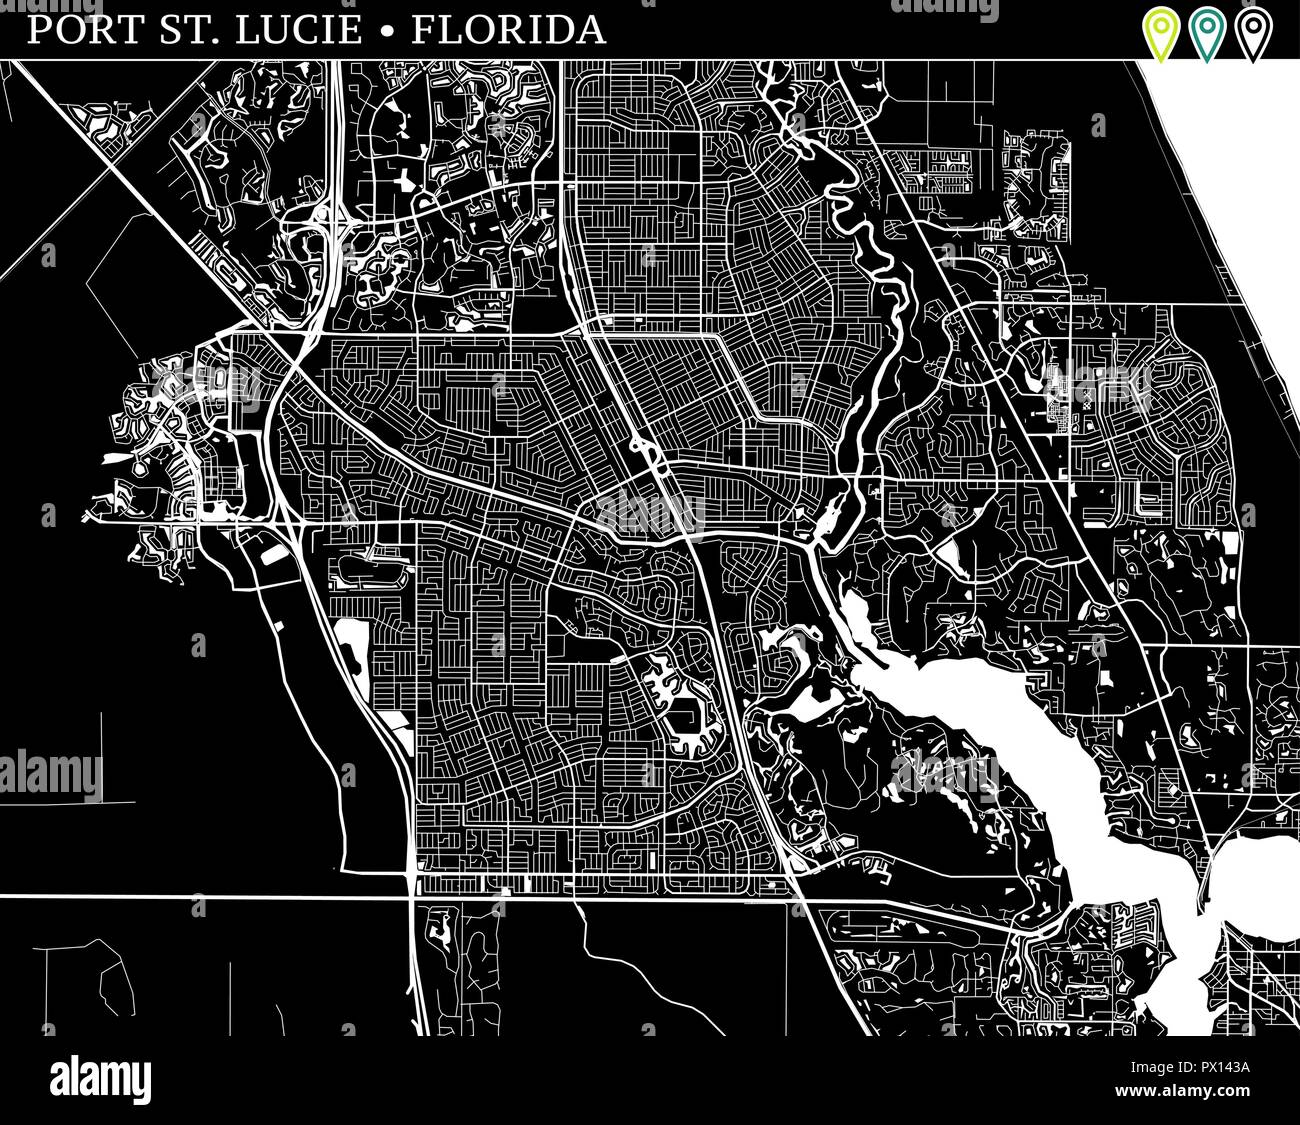 Map Of Port St Lucie Florida.Simple Map Of Port St Lucie Florida Usa Black And White Version